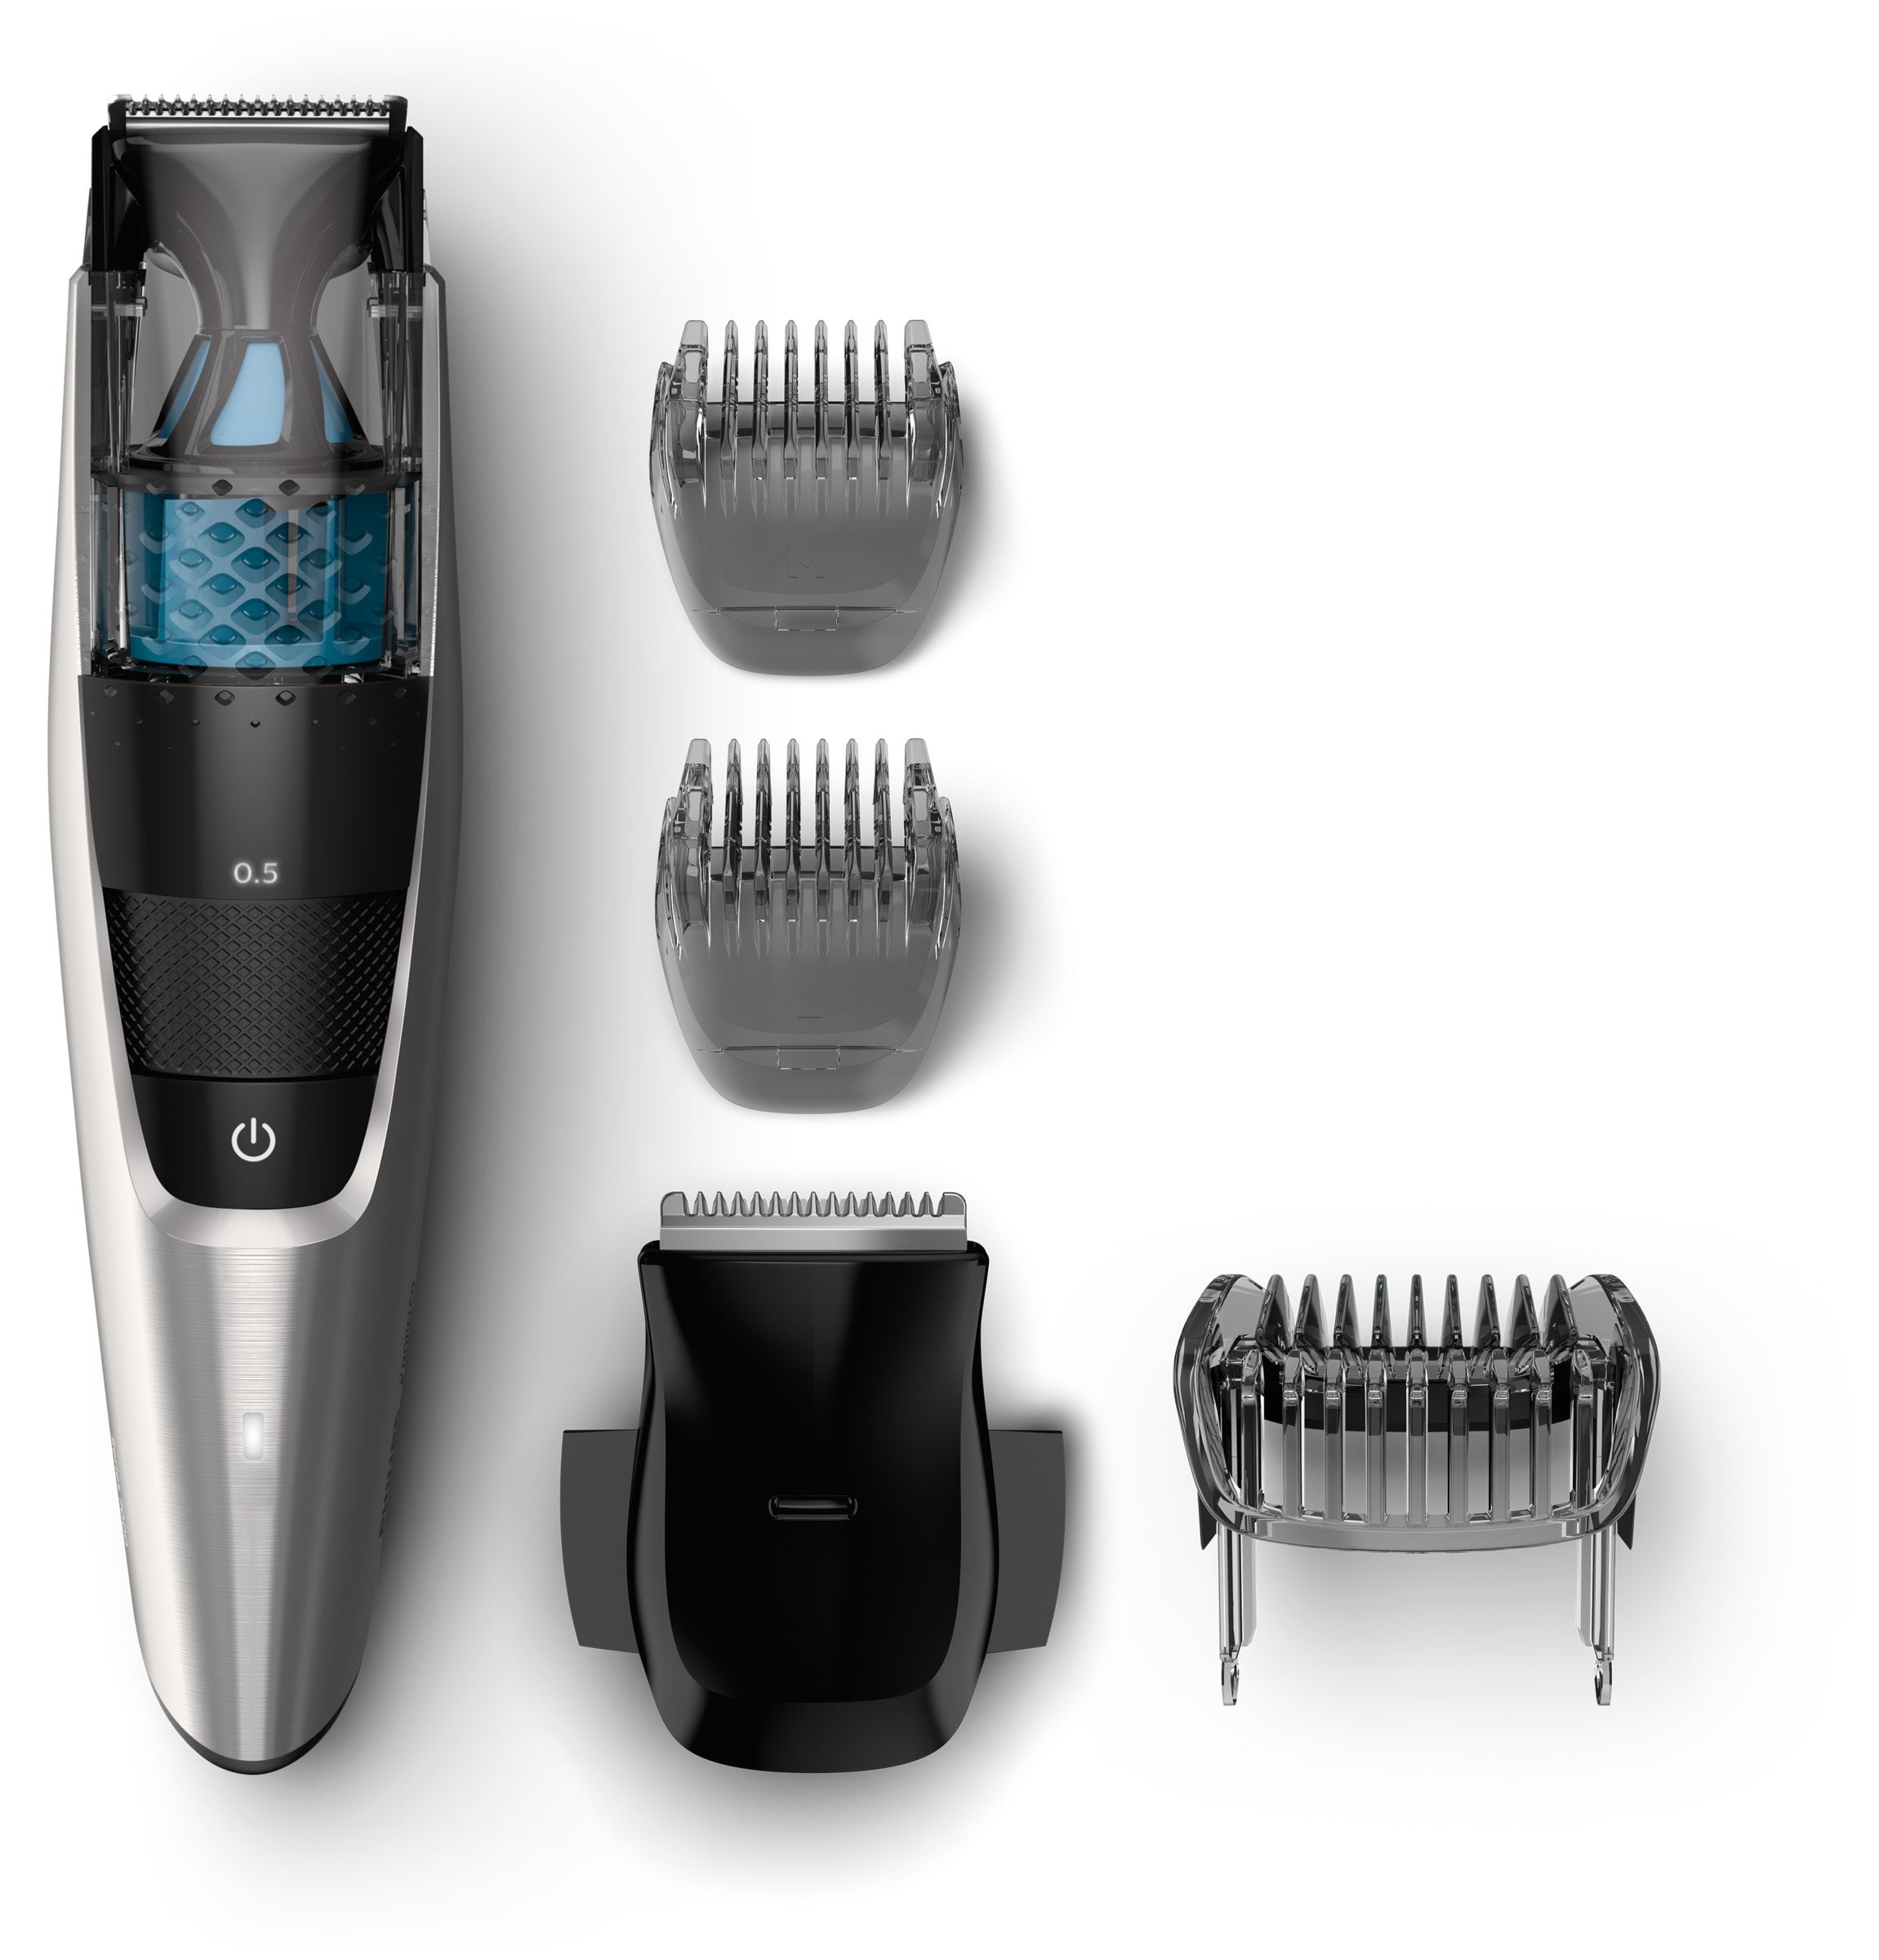 Series 7200 Beardtrimmer with Vacuum System